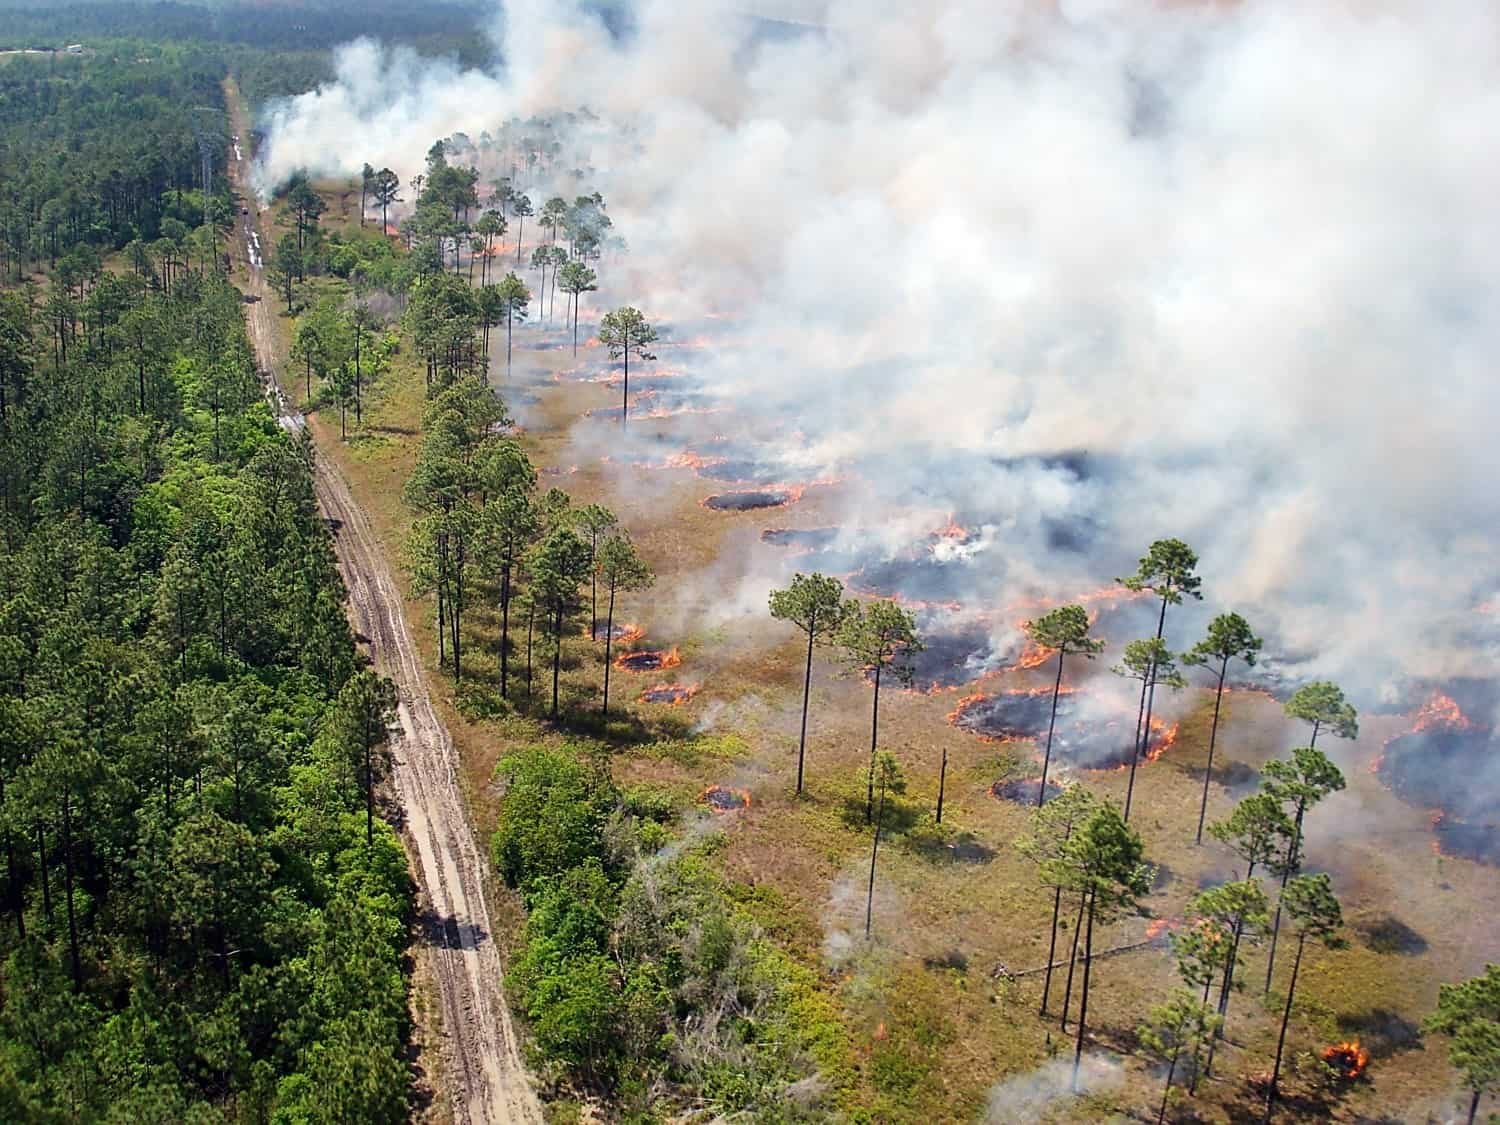 Aerial view of prescribed fire and smoke. Prescribed fire liability varies by state.